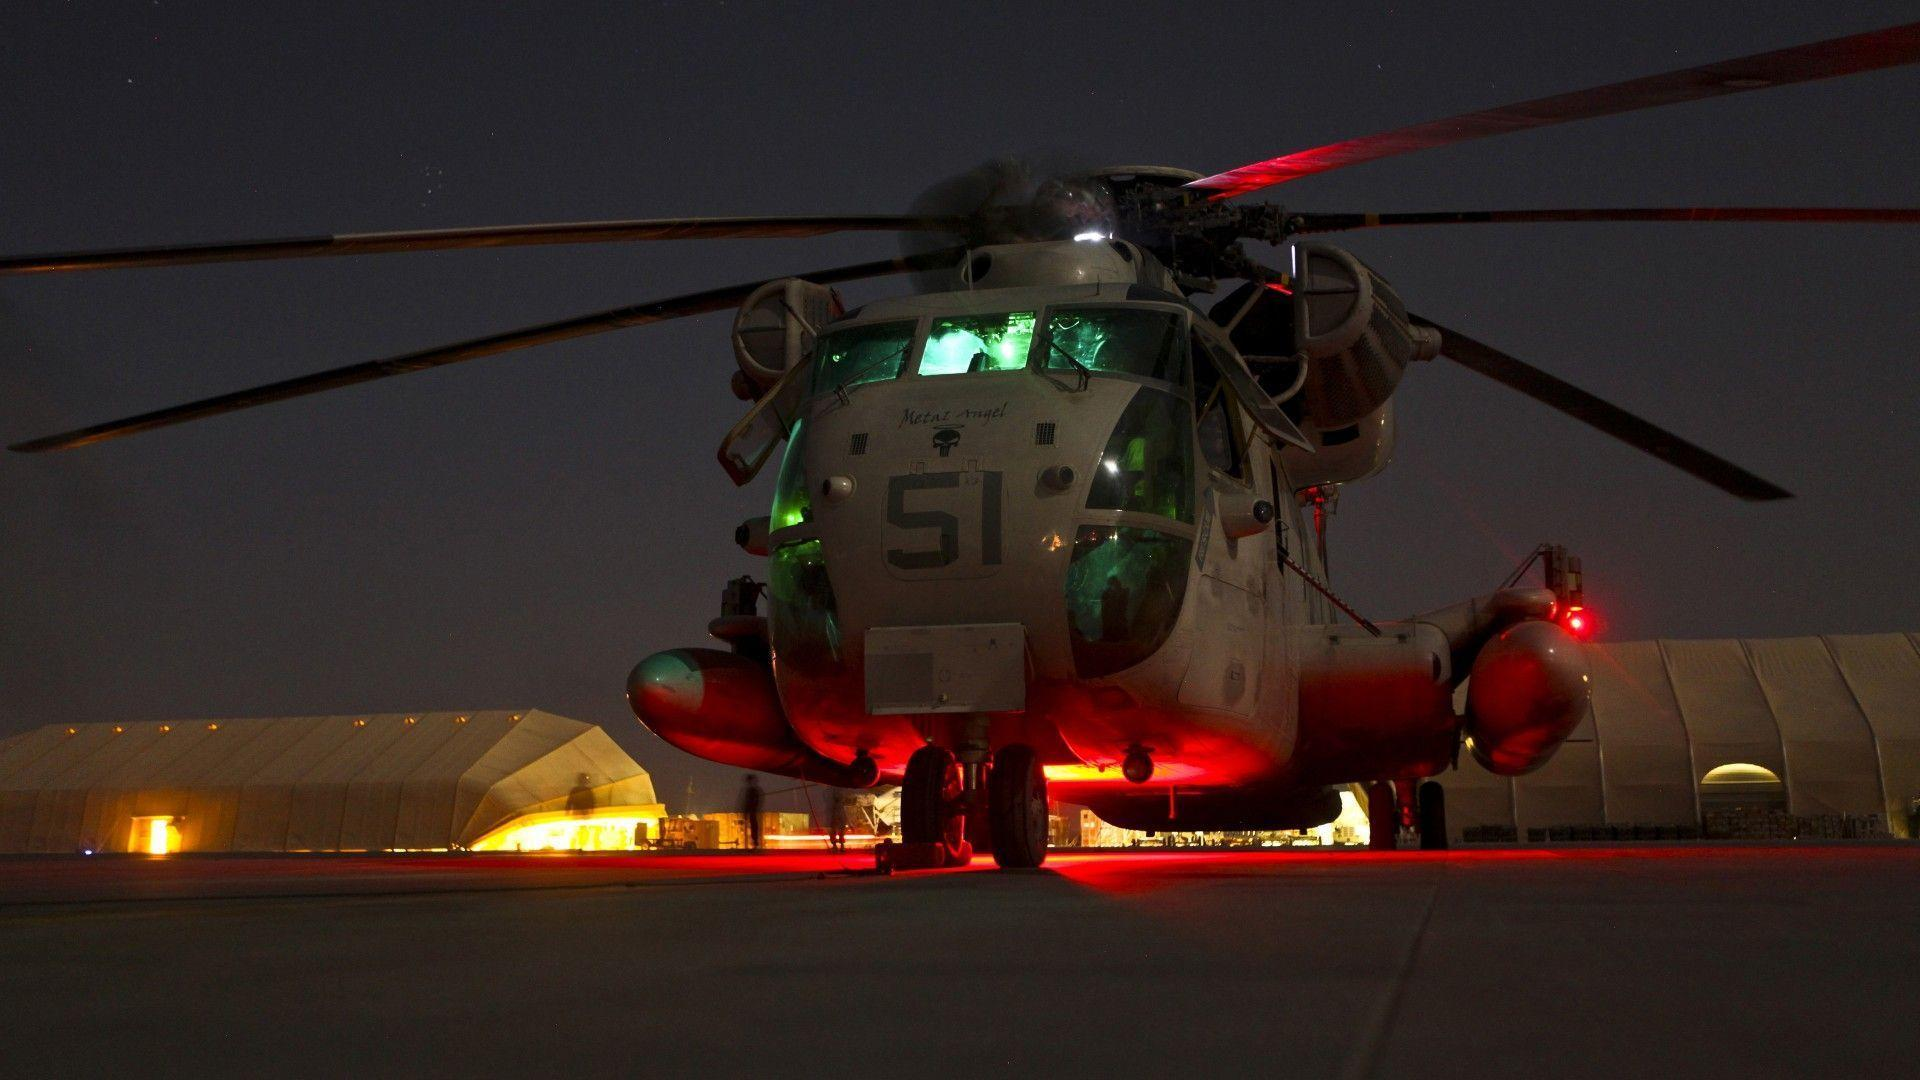 Night Helicopter Marine Corps United States Wallpapers